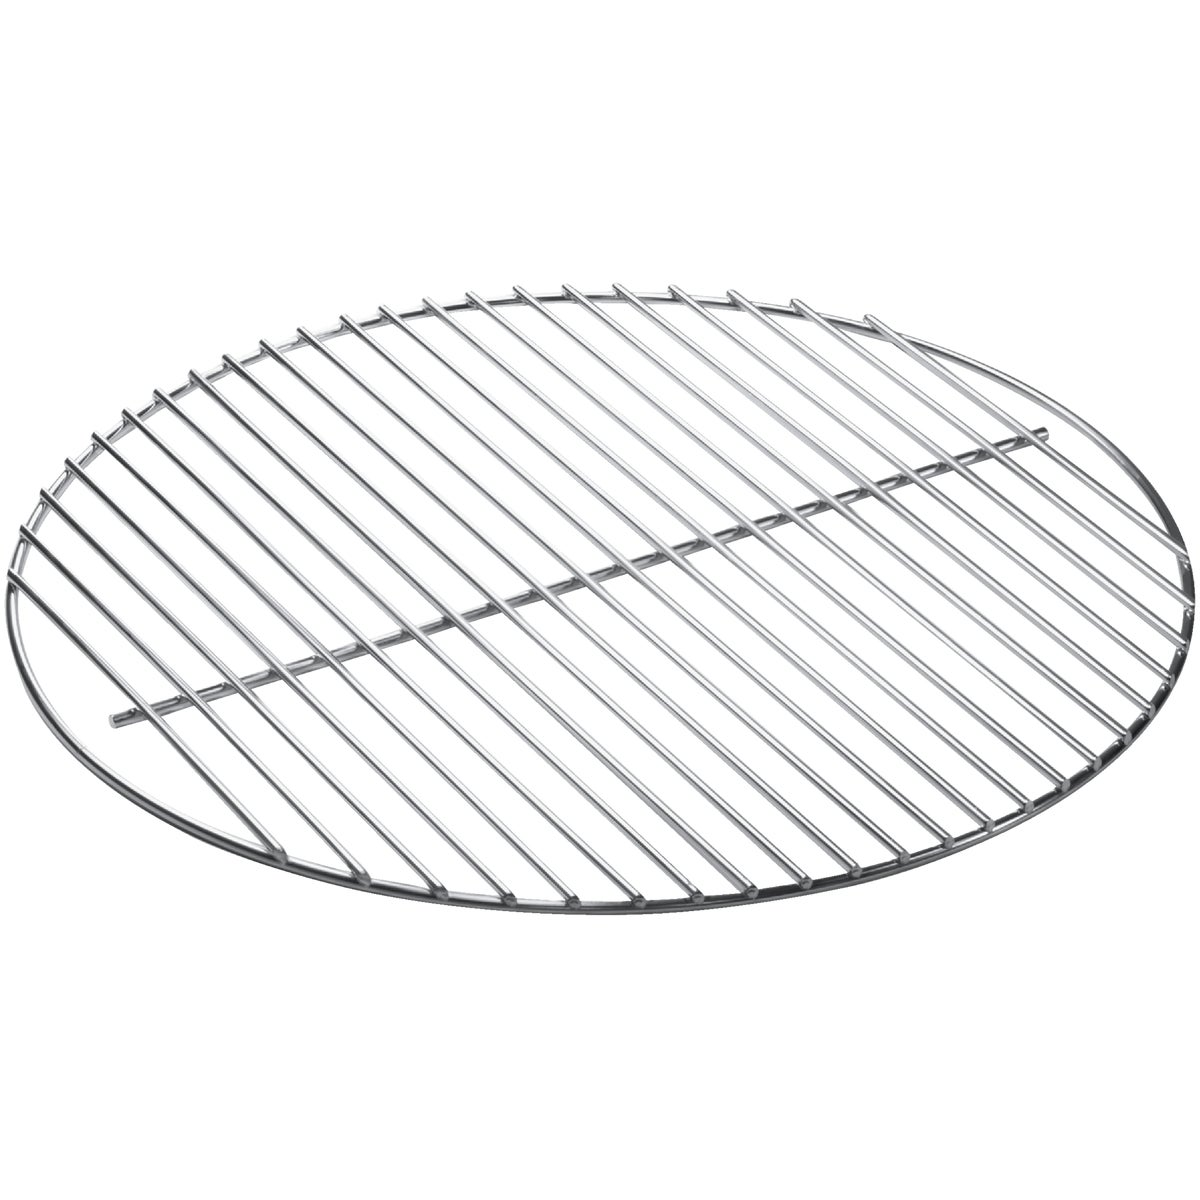 SMOKEY JOE REPL GRATE - 7431 by Weber